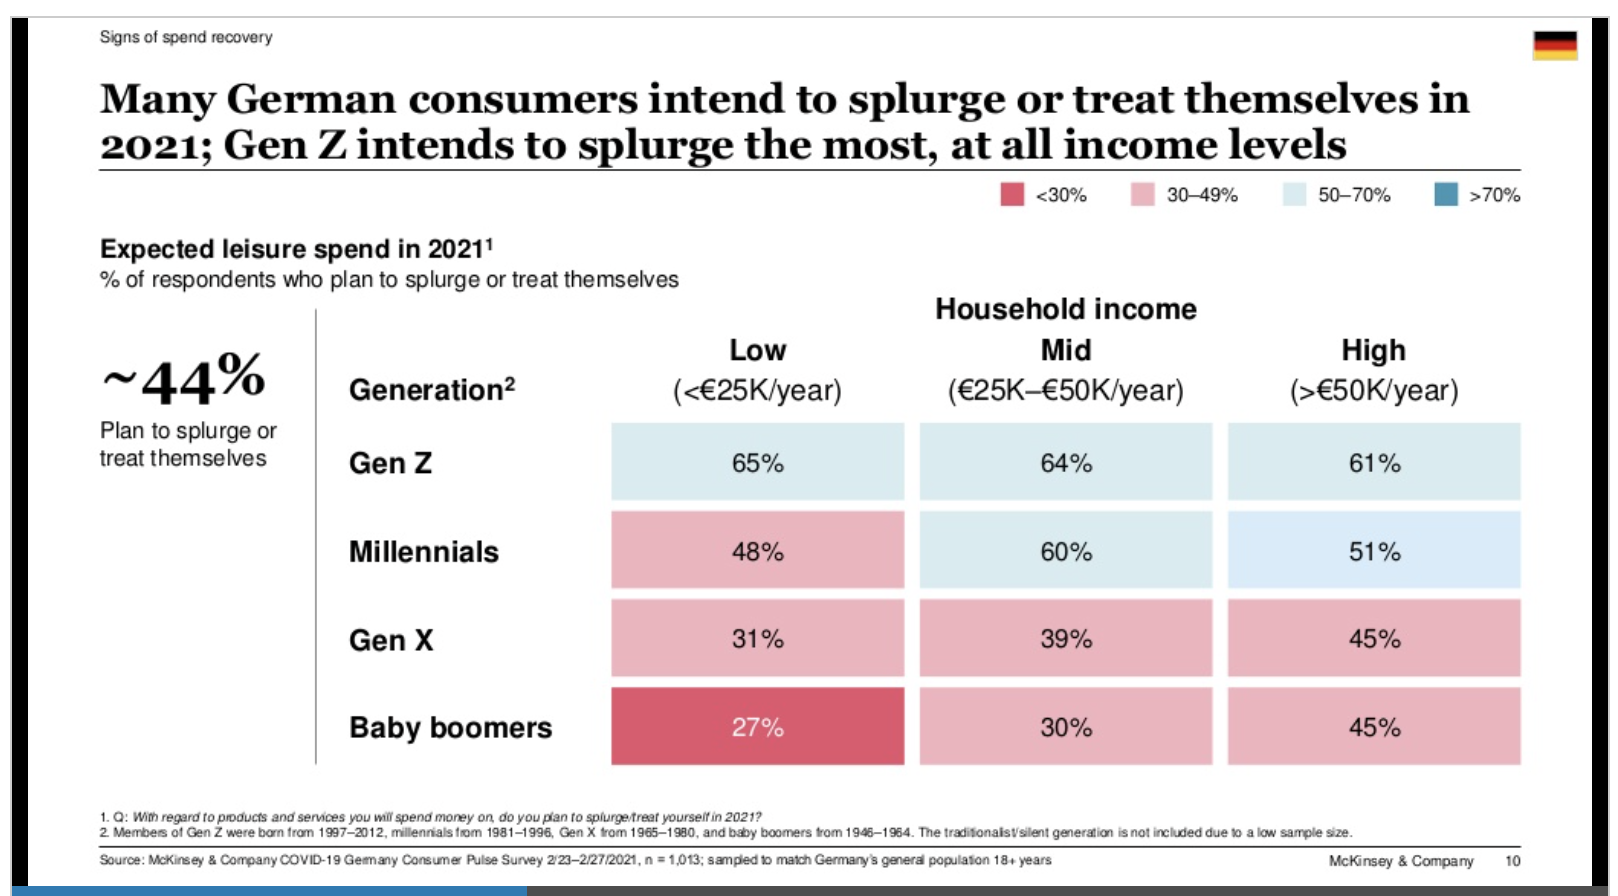 Many German consumers intend to splurge or treat themselves in 2021; Gen Z intends to splurge the most, at all income levels